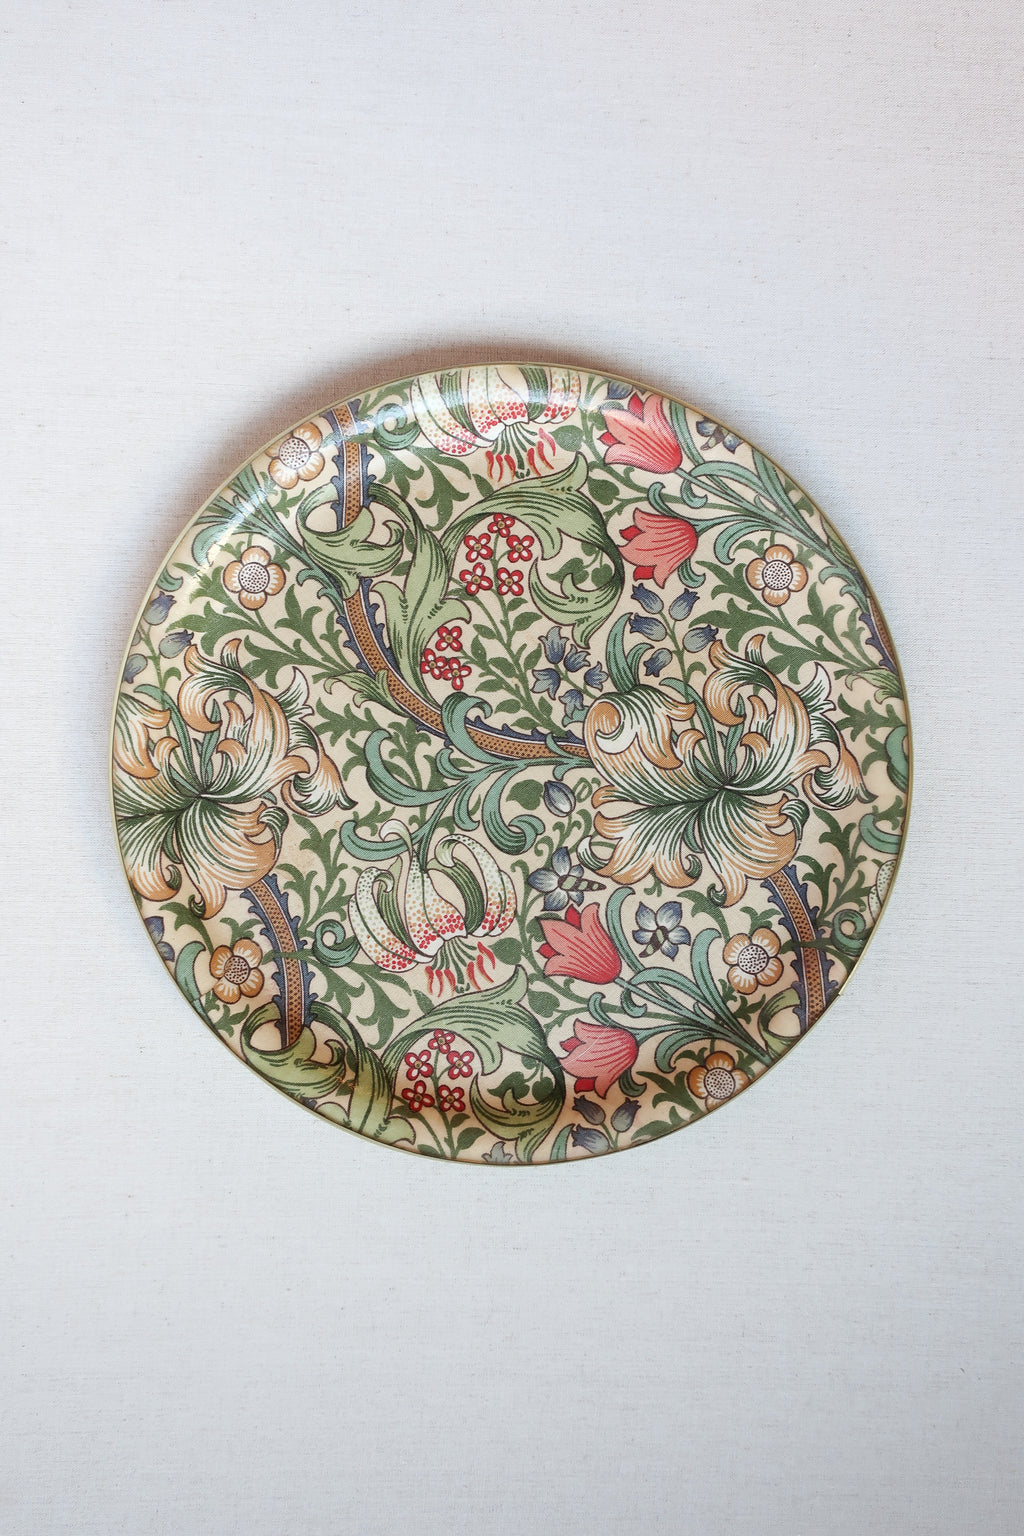 Vintage British Floral Serving Tray Rental